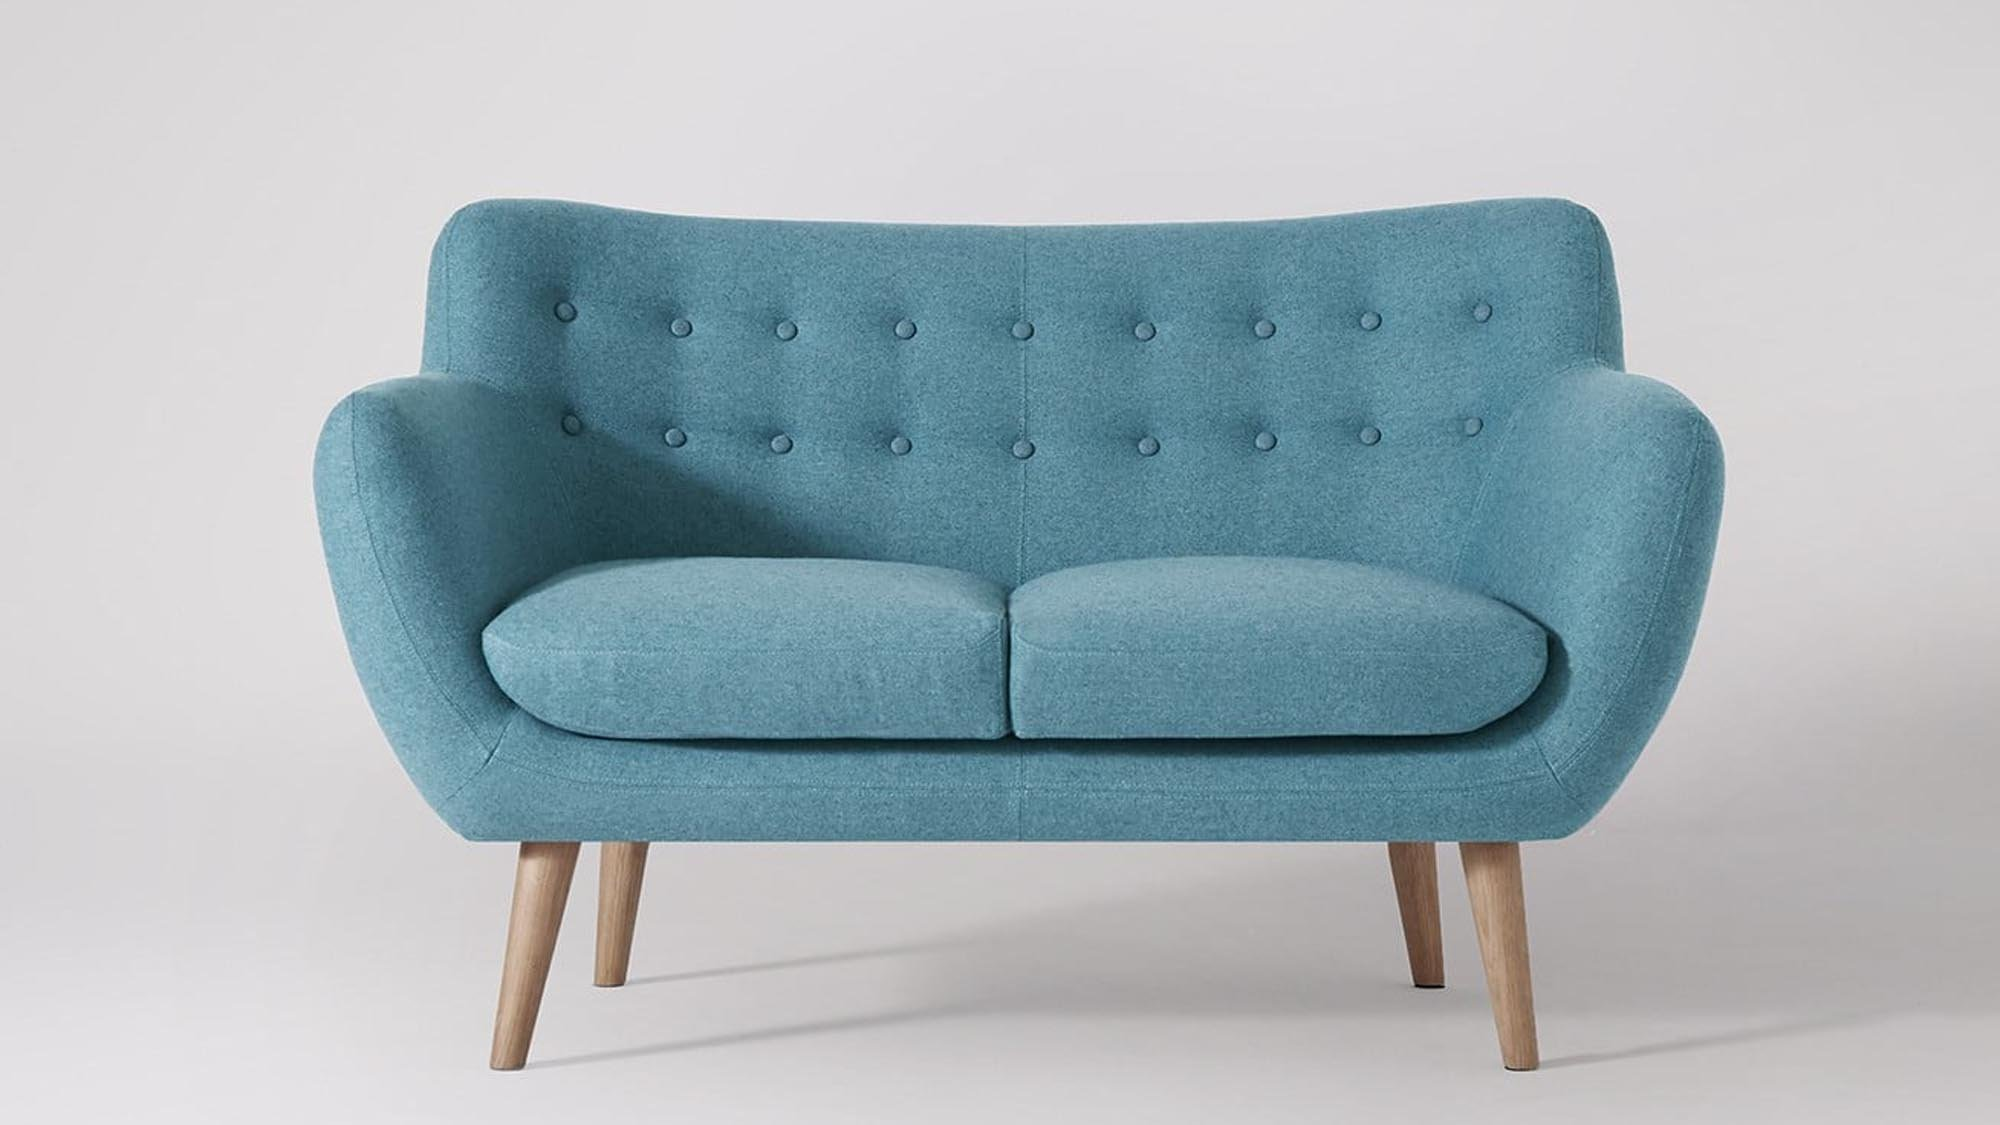 Enjoyable Best Sofa 2019 Find The Perfect Sofa For Your Living Room Inzonedesignstudio Interior Chair Design Inzonedesignstudiocom